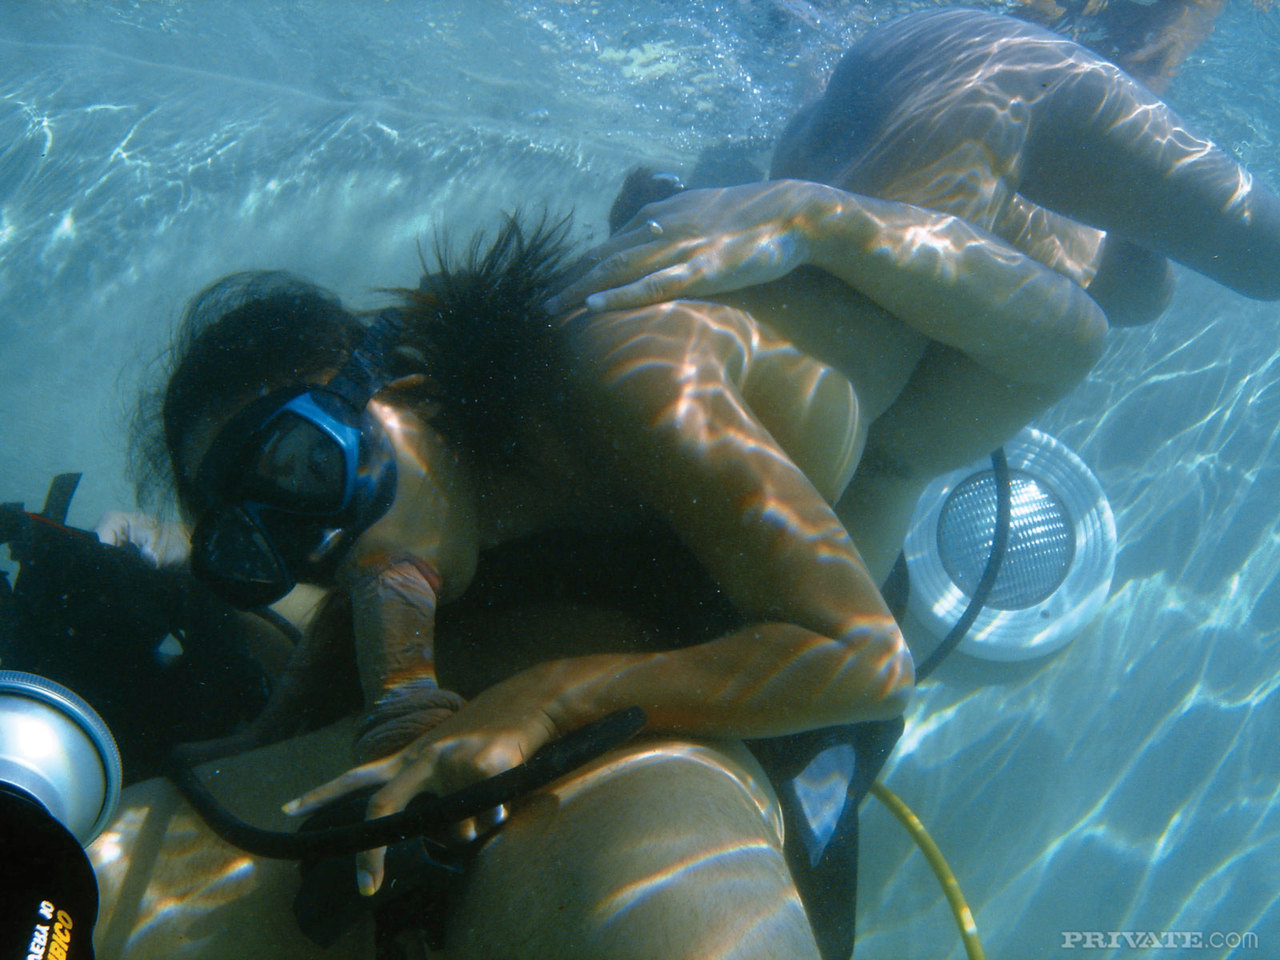 free-pon-gratuitous-video-of-sexy-scuba-divers-swingers